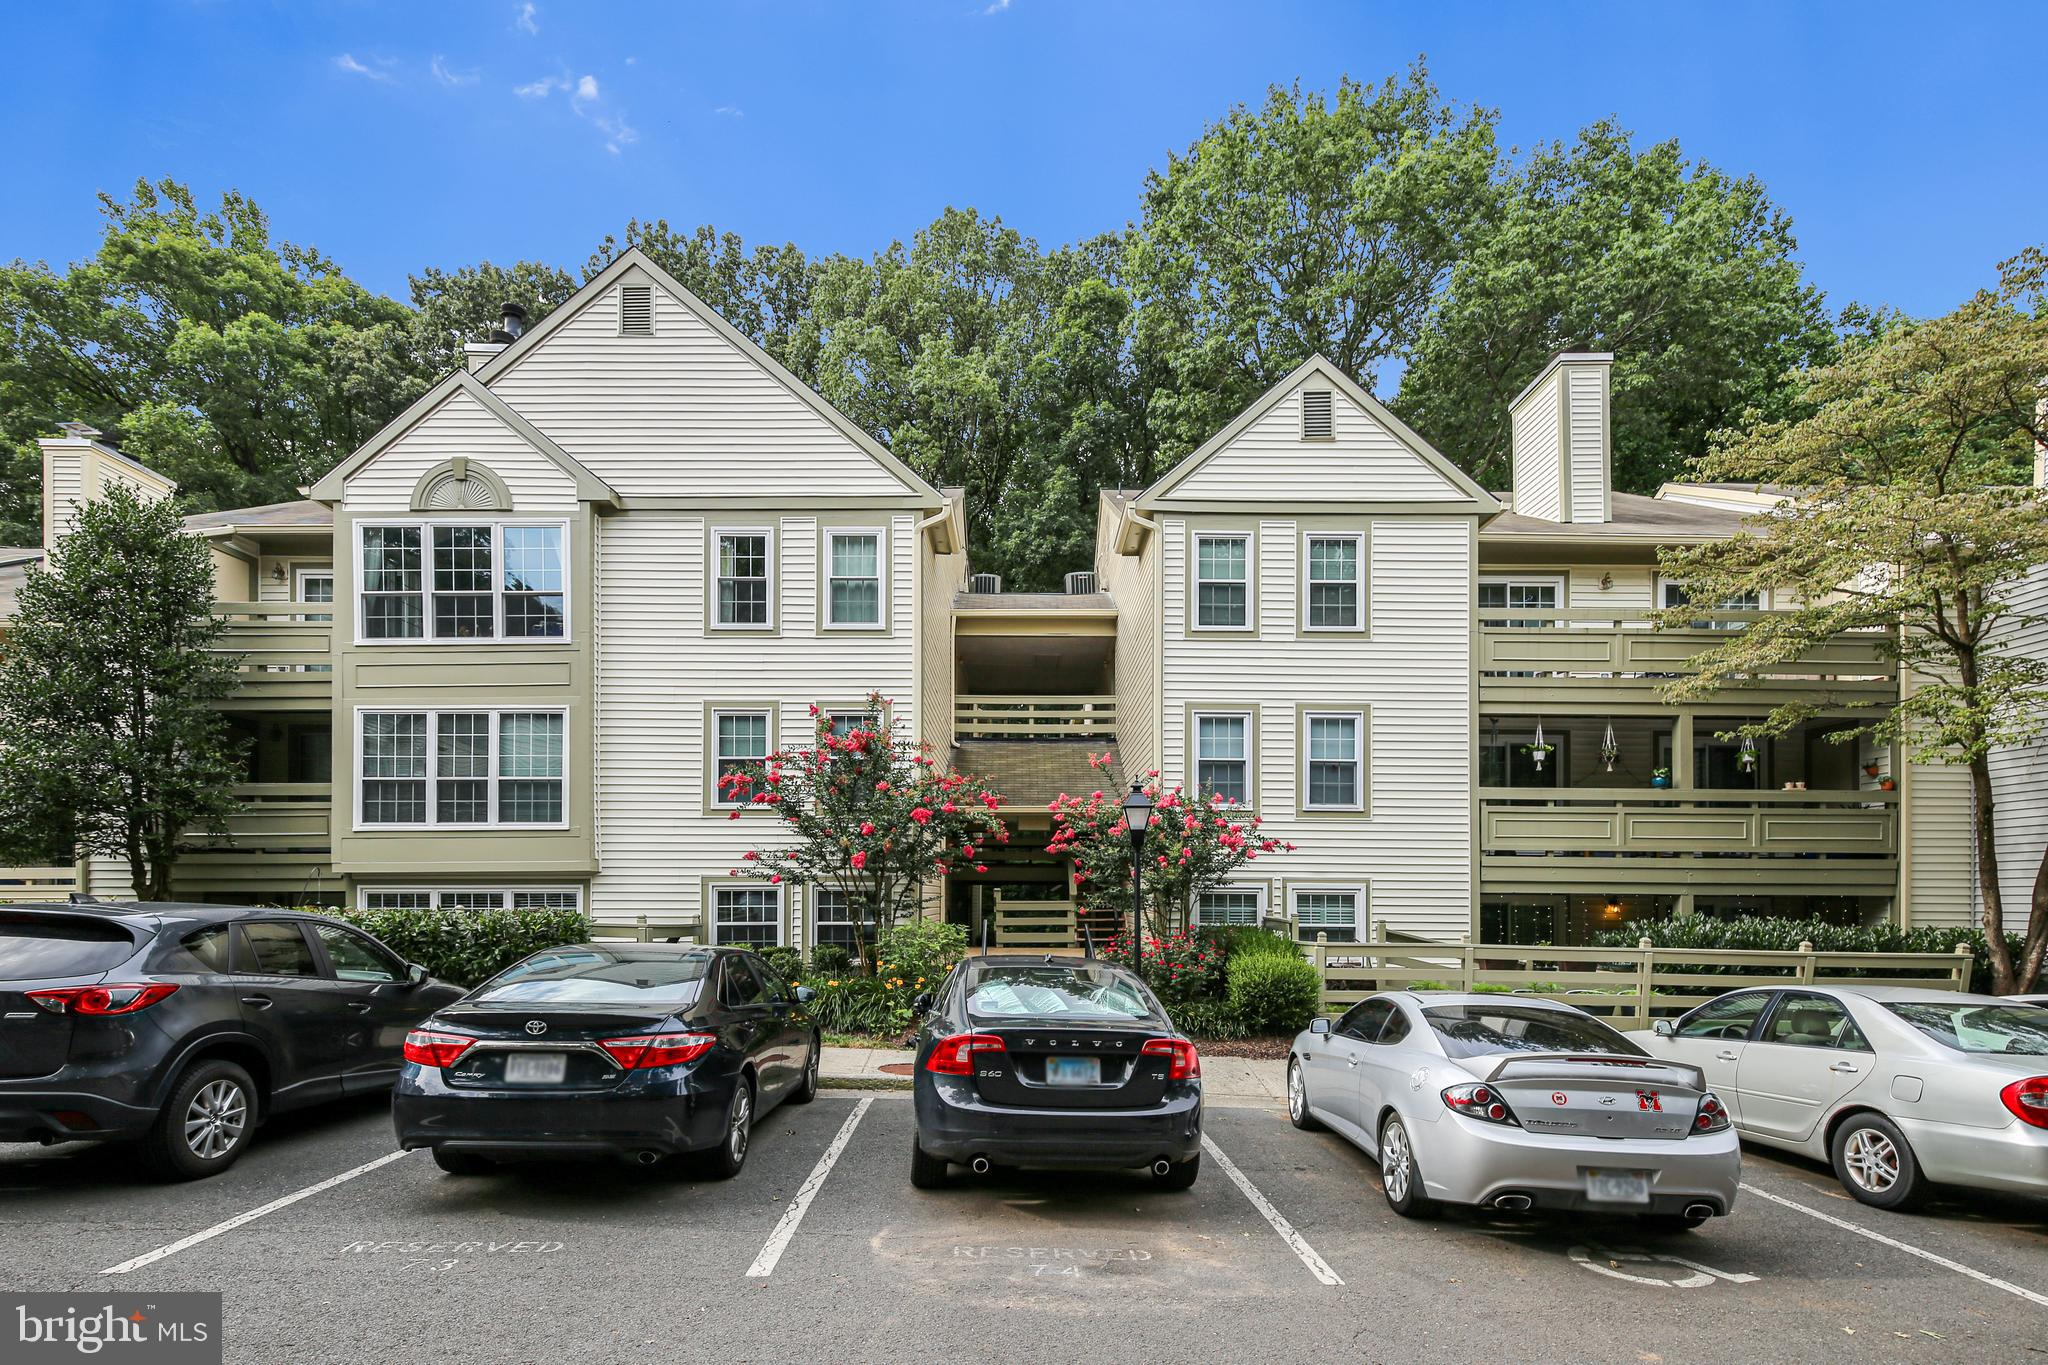 Fabulous Move-in Ready Ground Level 2-Bed, 2-Bath condo in the Highly Sought after Bristol House Community. You'll love the Floor Plan with 2 master bedroom suites, a rare sunroom, built in bookshelves and a balcony facing woods  and overlooking the walking path.  Updated Kitchen with granite counters and stainless appliances. Cozy up in the fall and winter with the wood burning fireplace. Great Location less than 2 miles from the Metro & minutes to the Toll Road and Reston Town Center. The Condo Fee covers exterior Maintenance of the Condo as well as the Landscaping, Roads and Common Areas, and Water. This home is move in ready and won't last long.